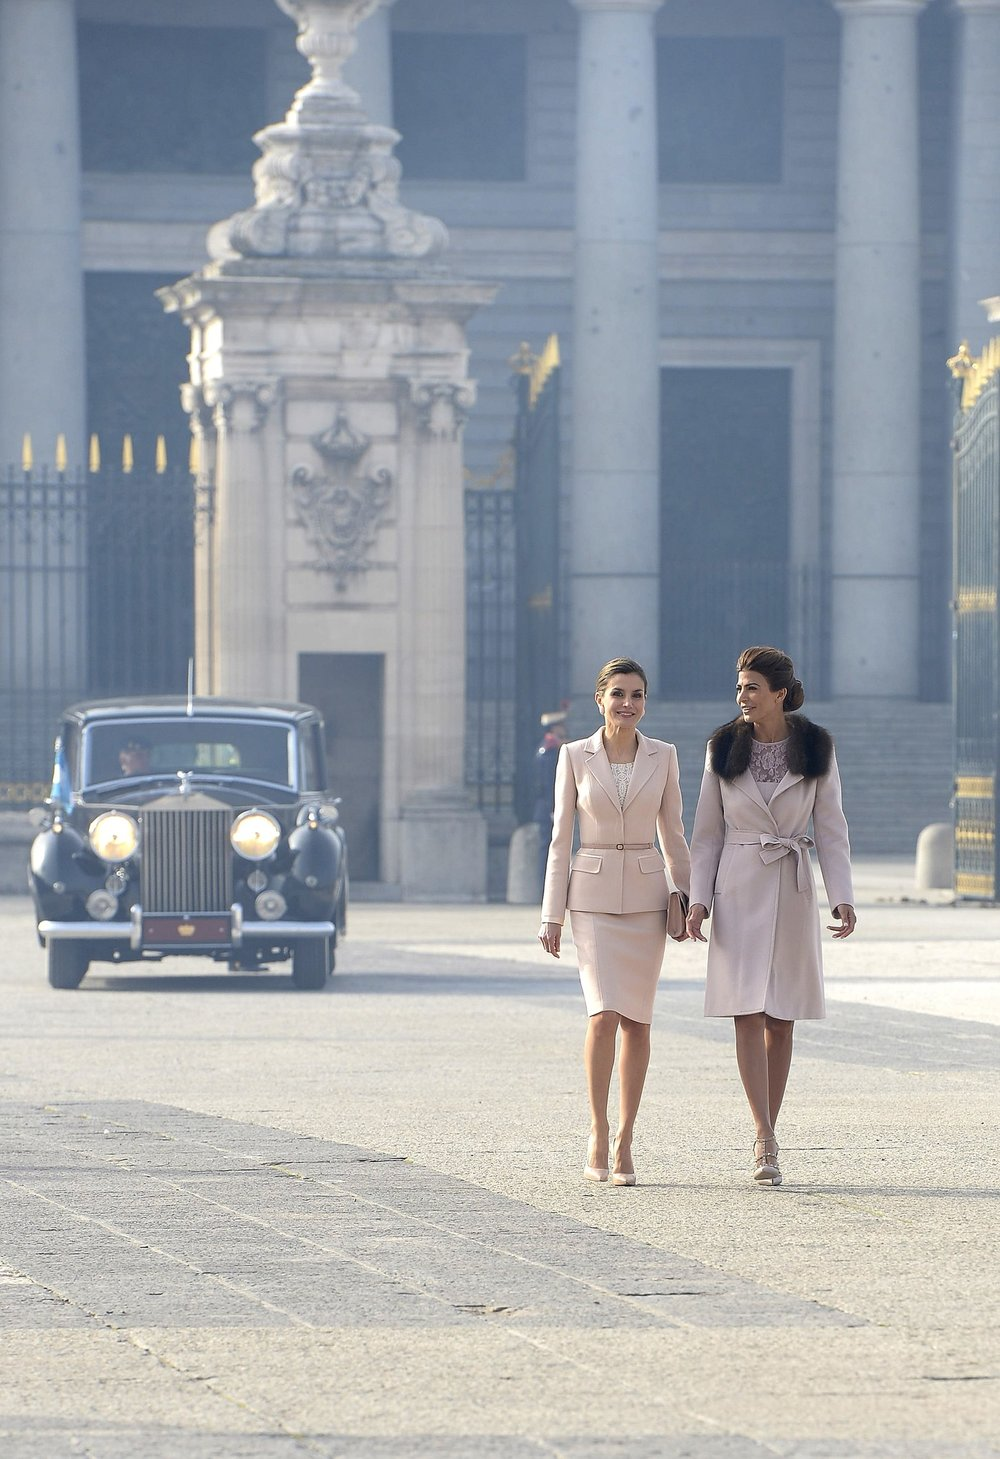 Queen Letizia (left) and First Lady Juliana Awada (right) - Photo courtesy of Getty Images